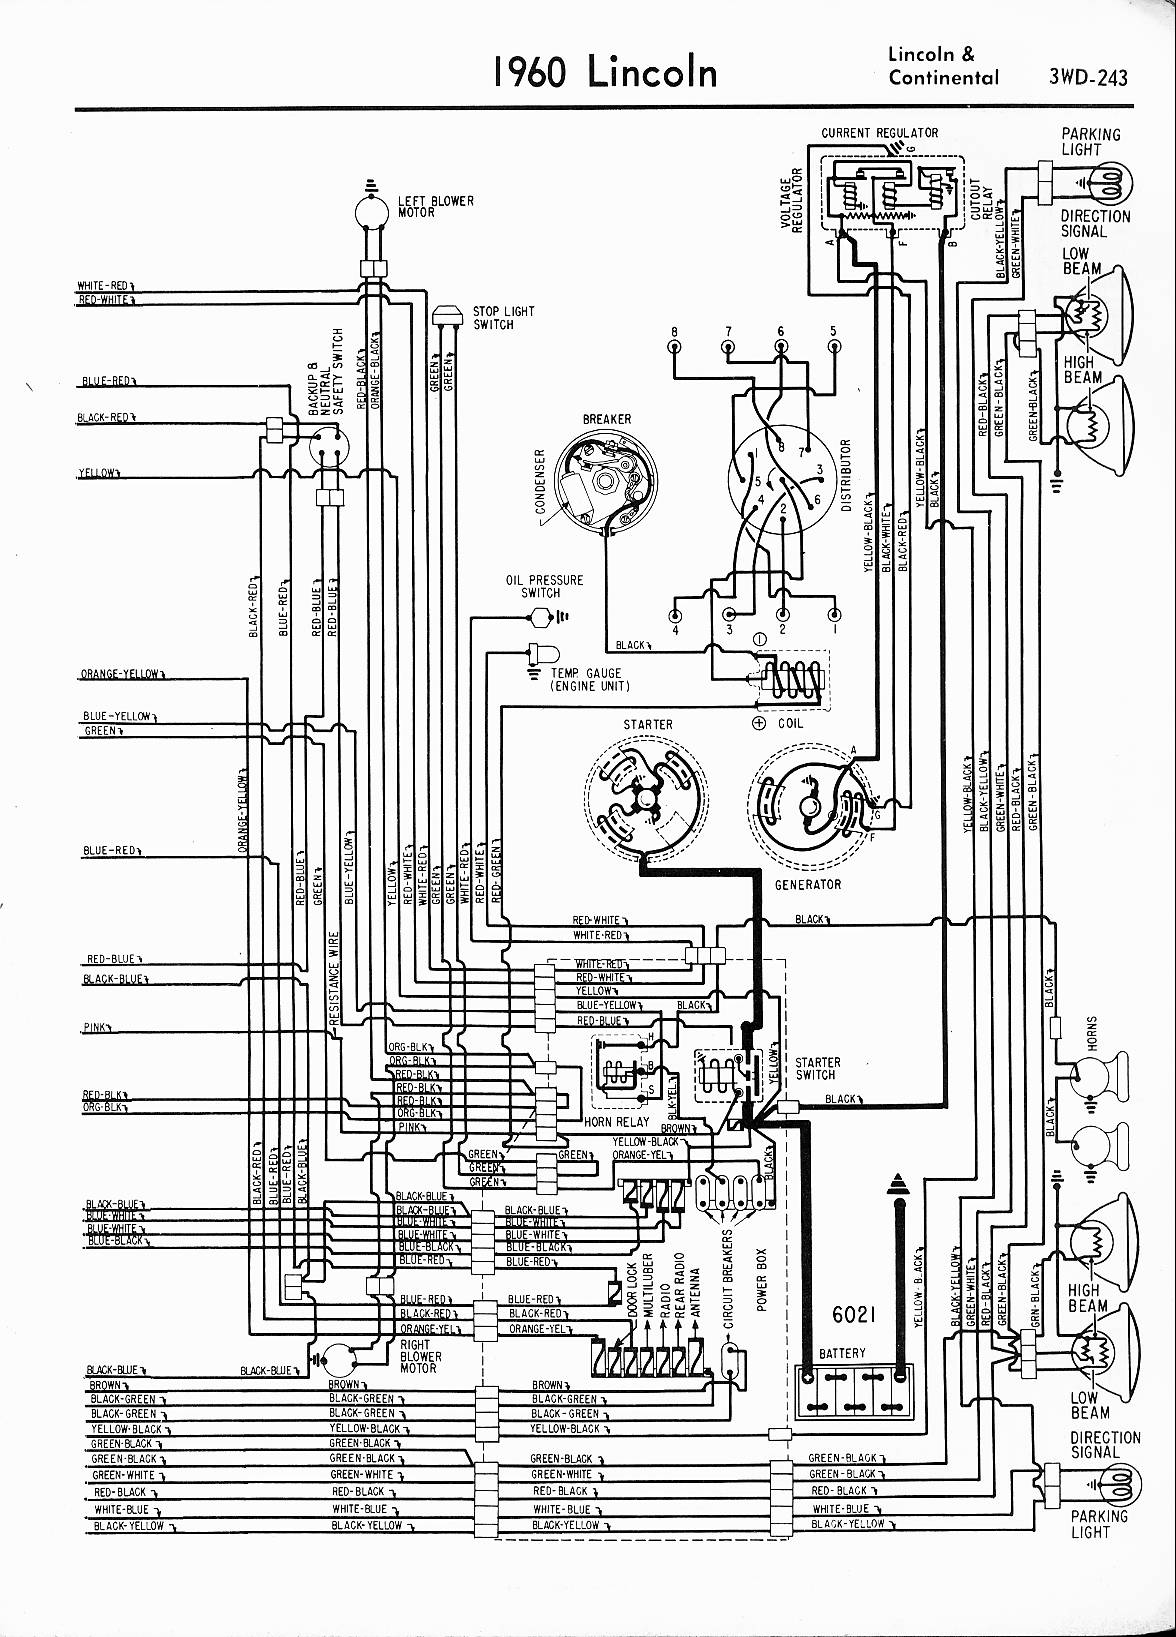 1966 lincoln wiring diagram content resource of wiring diagram u2022 rh  uberstuff co Chevelle Wiring Diagram 1968 Chevelle Wiring Harness Diagram